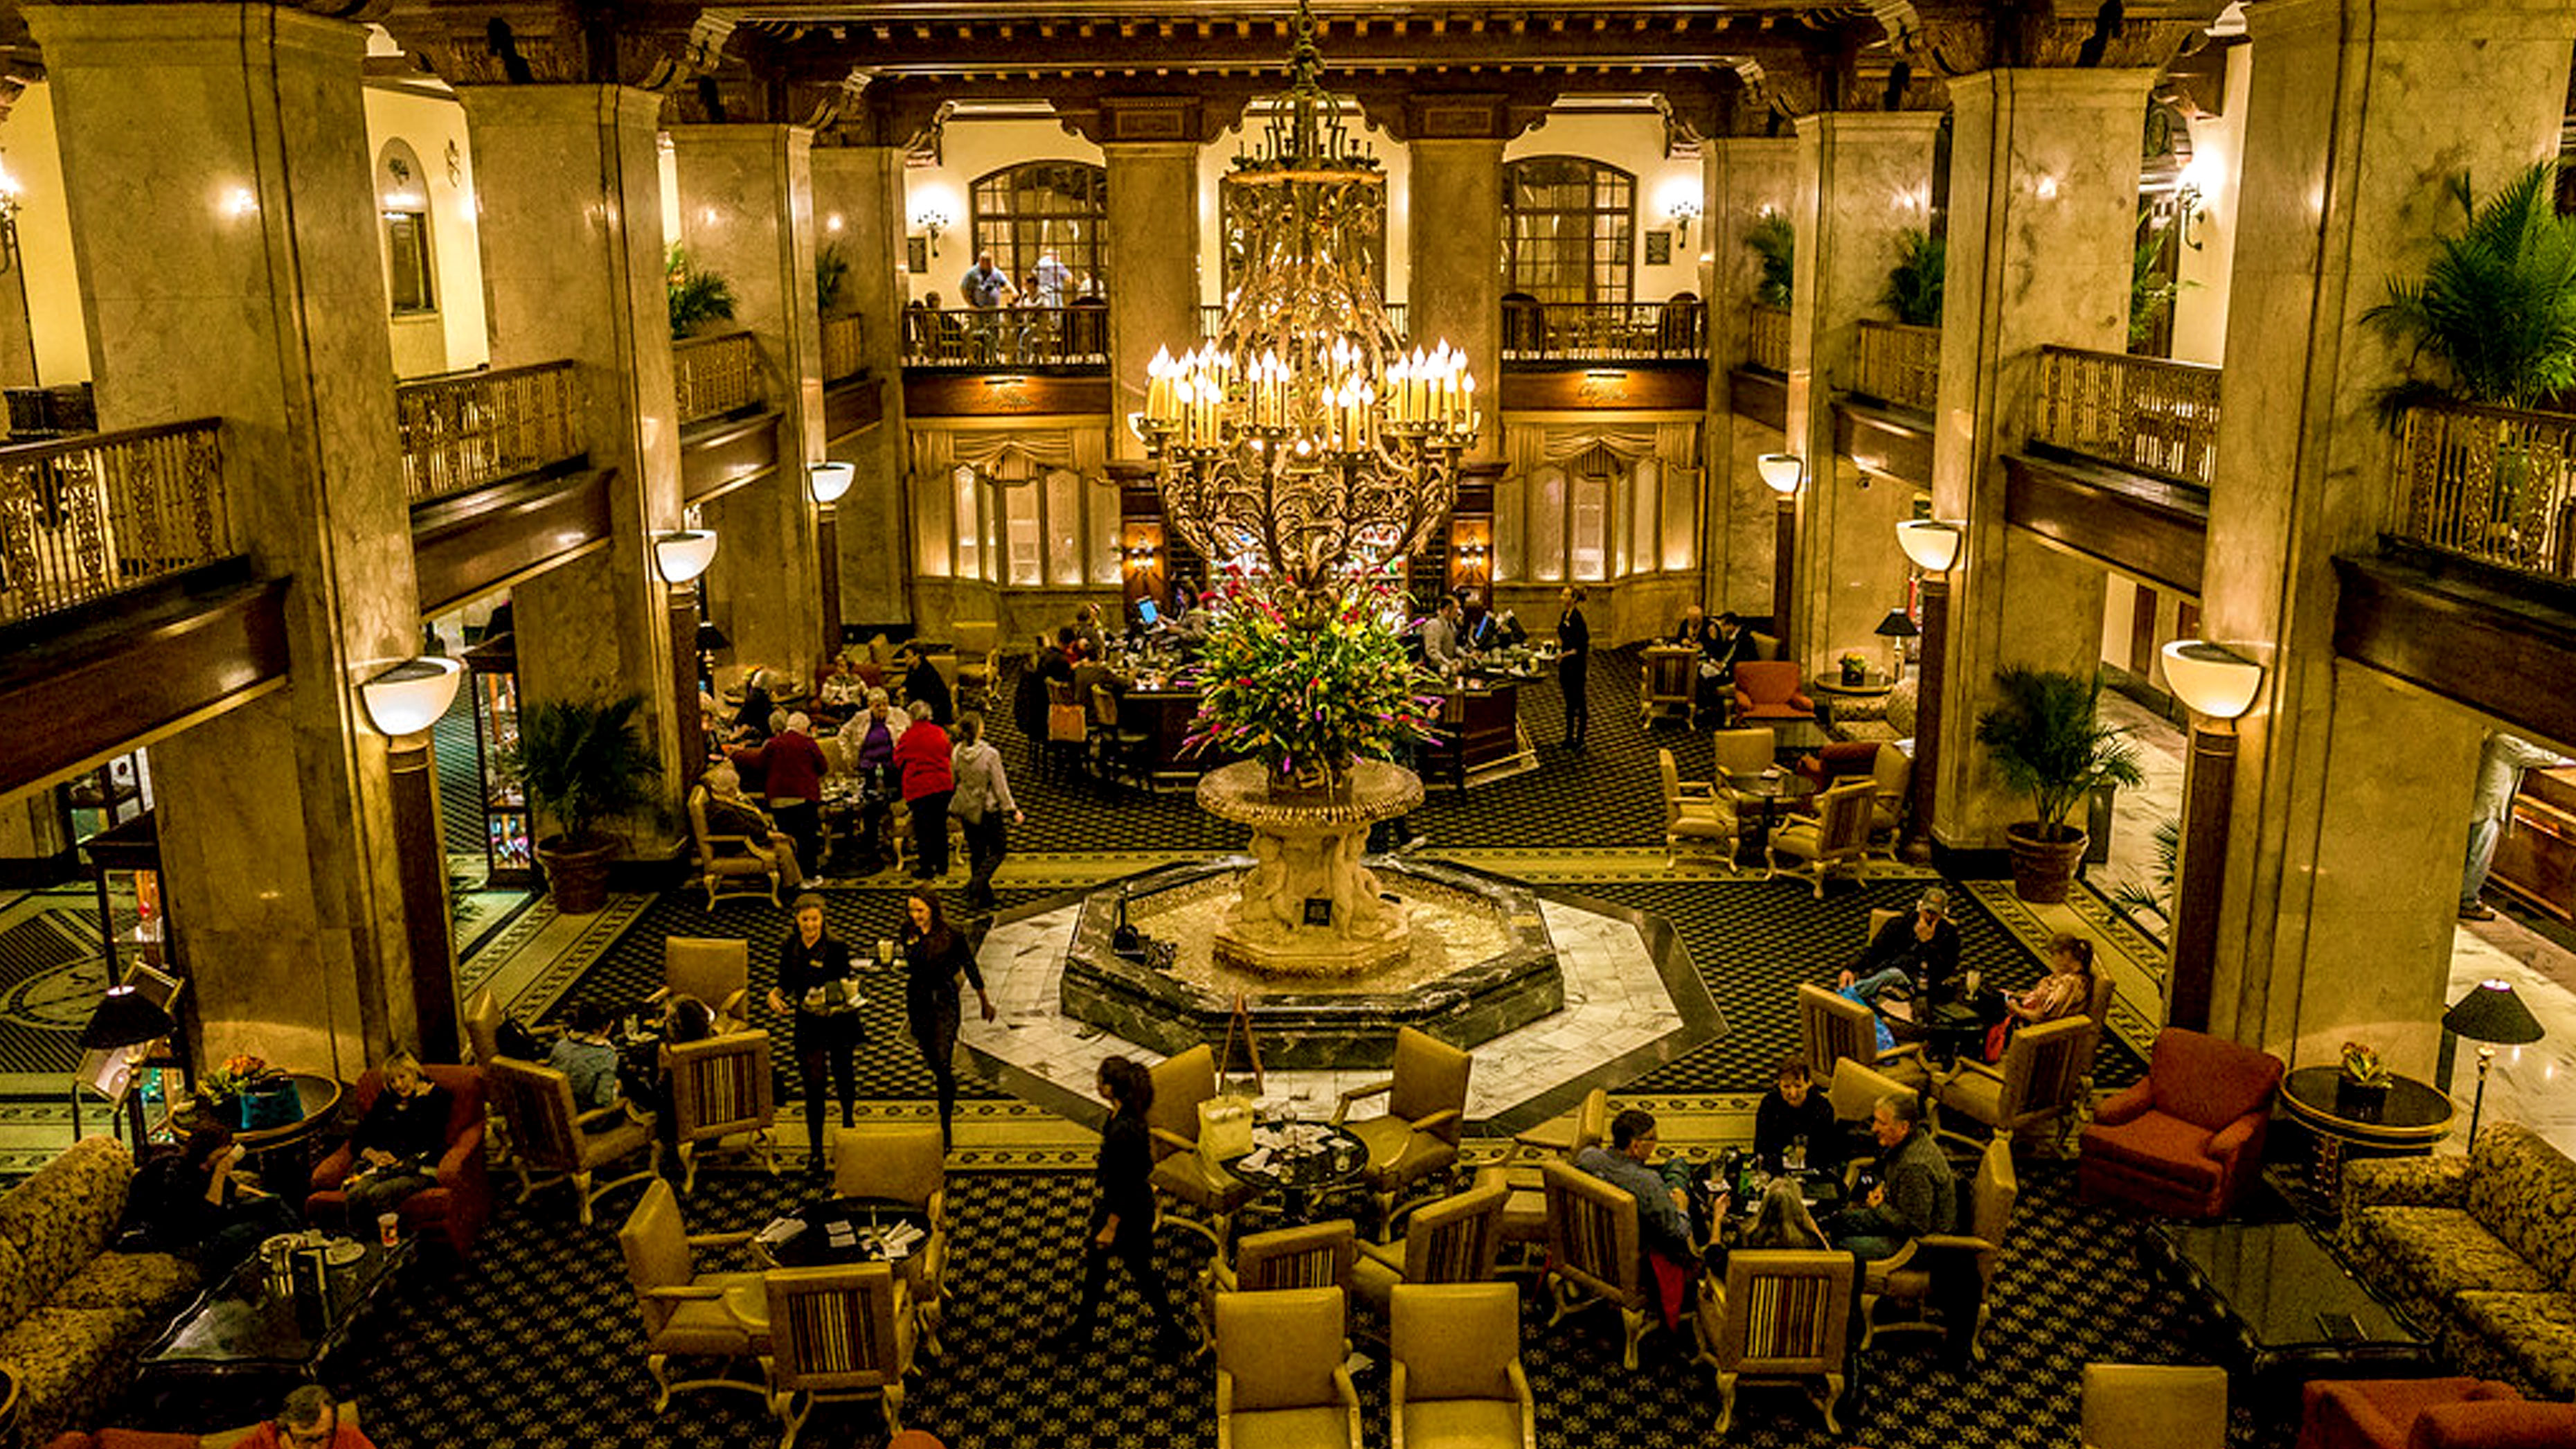 Interior view of architecture of the Peabody Hotel